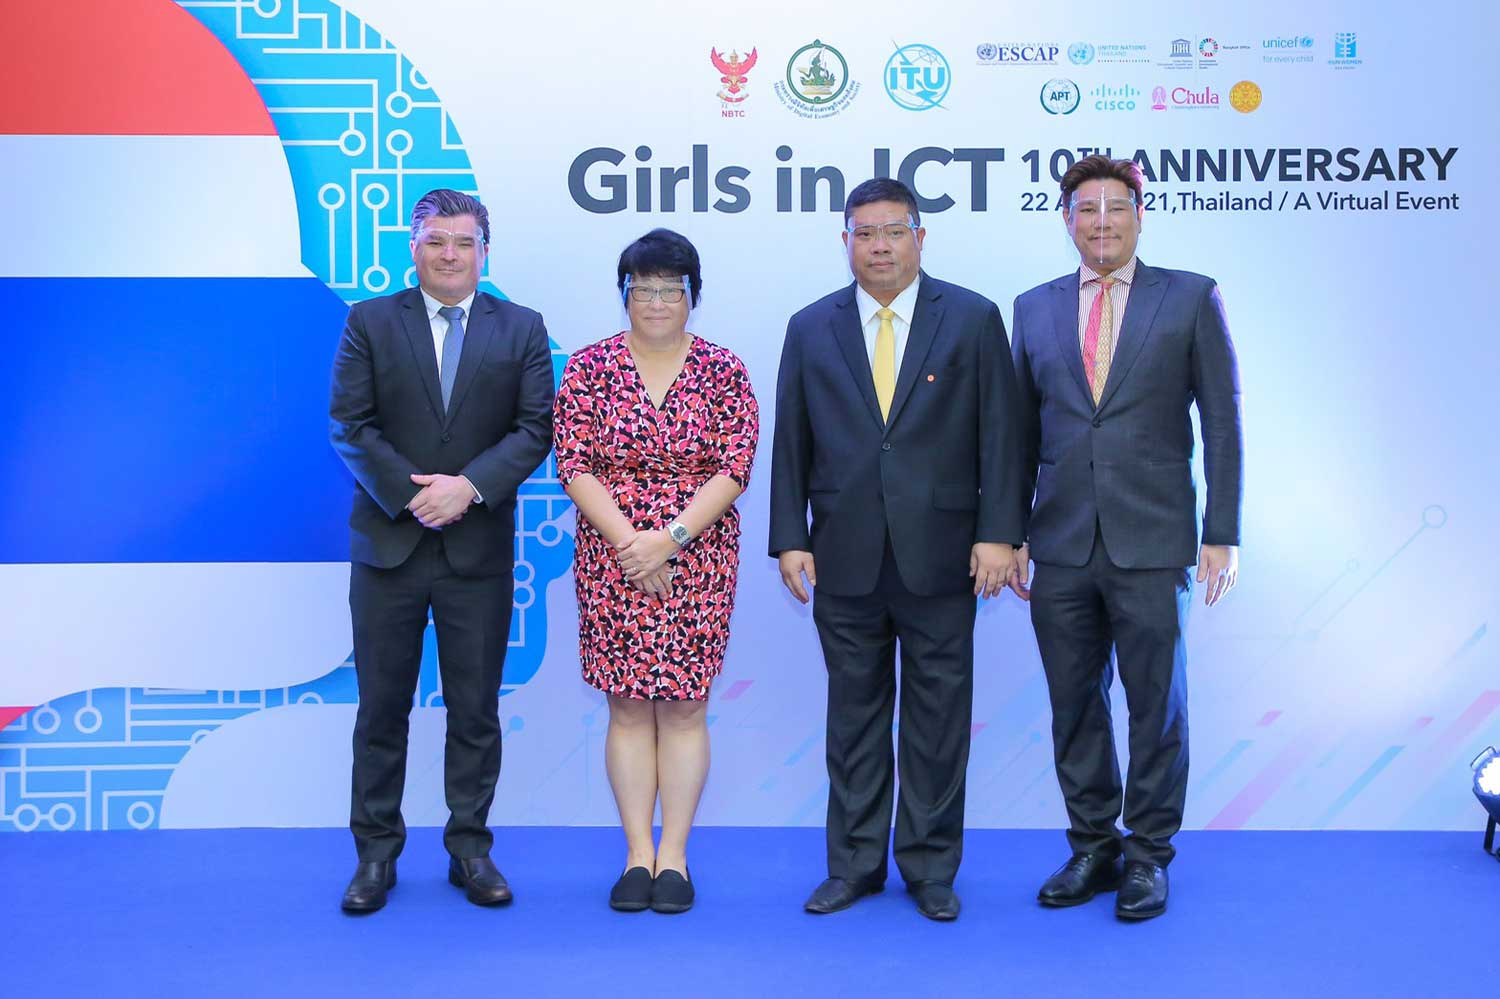 NBTC and International Telecommunication Union (ITU) host Girls in ICT Day